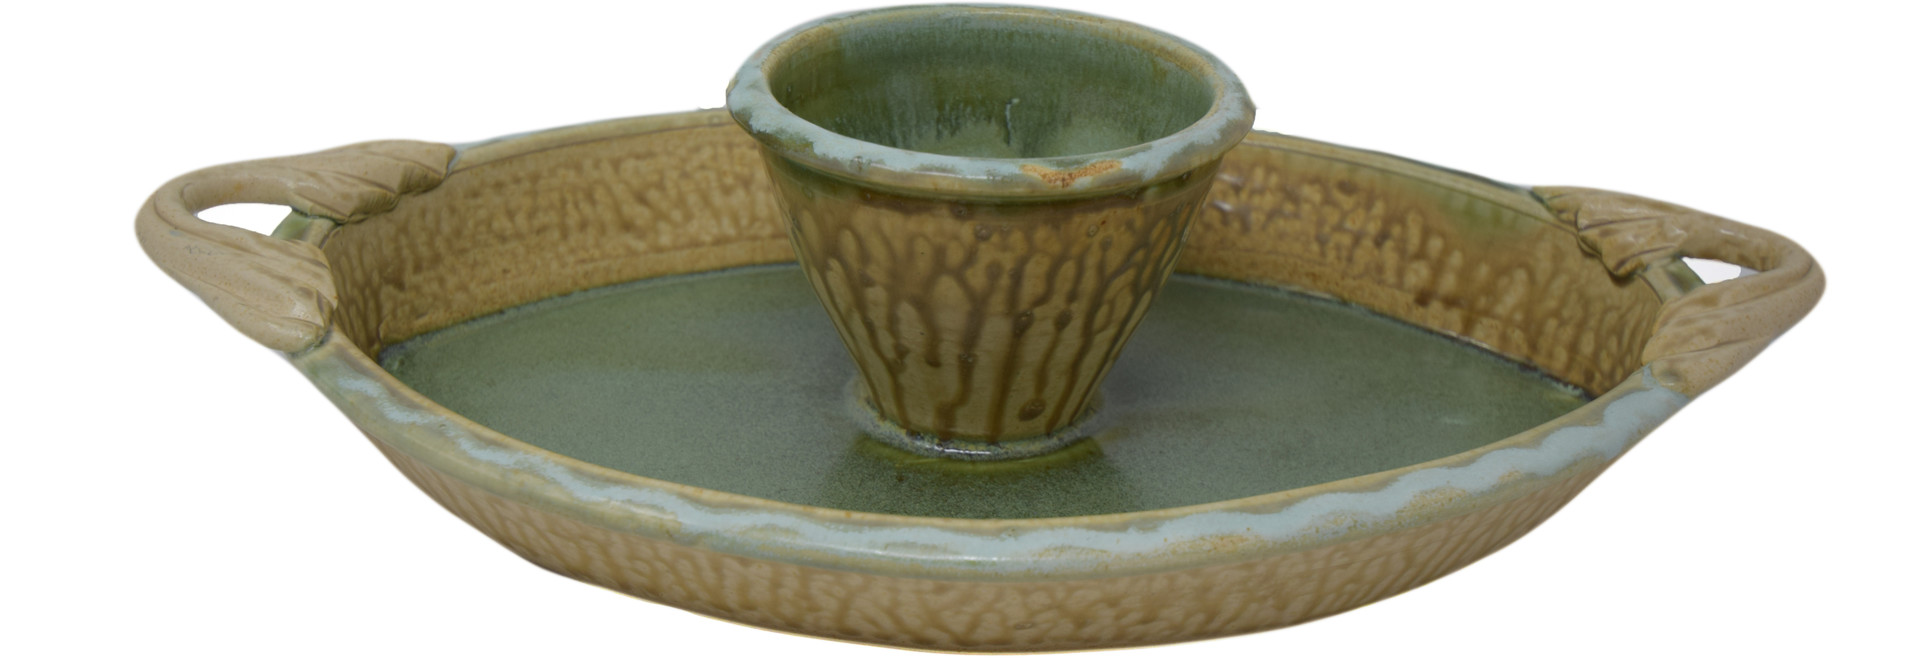 Oval Chip and Dip Dish